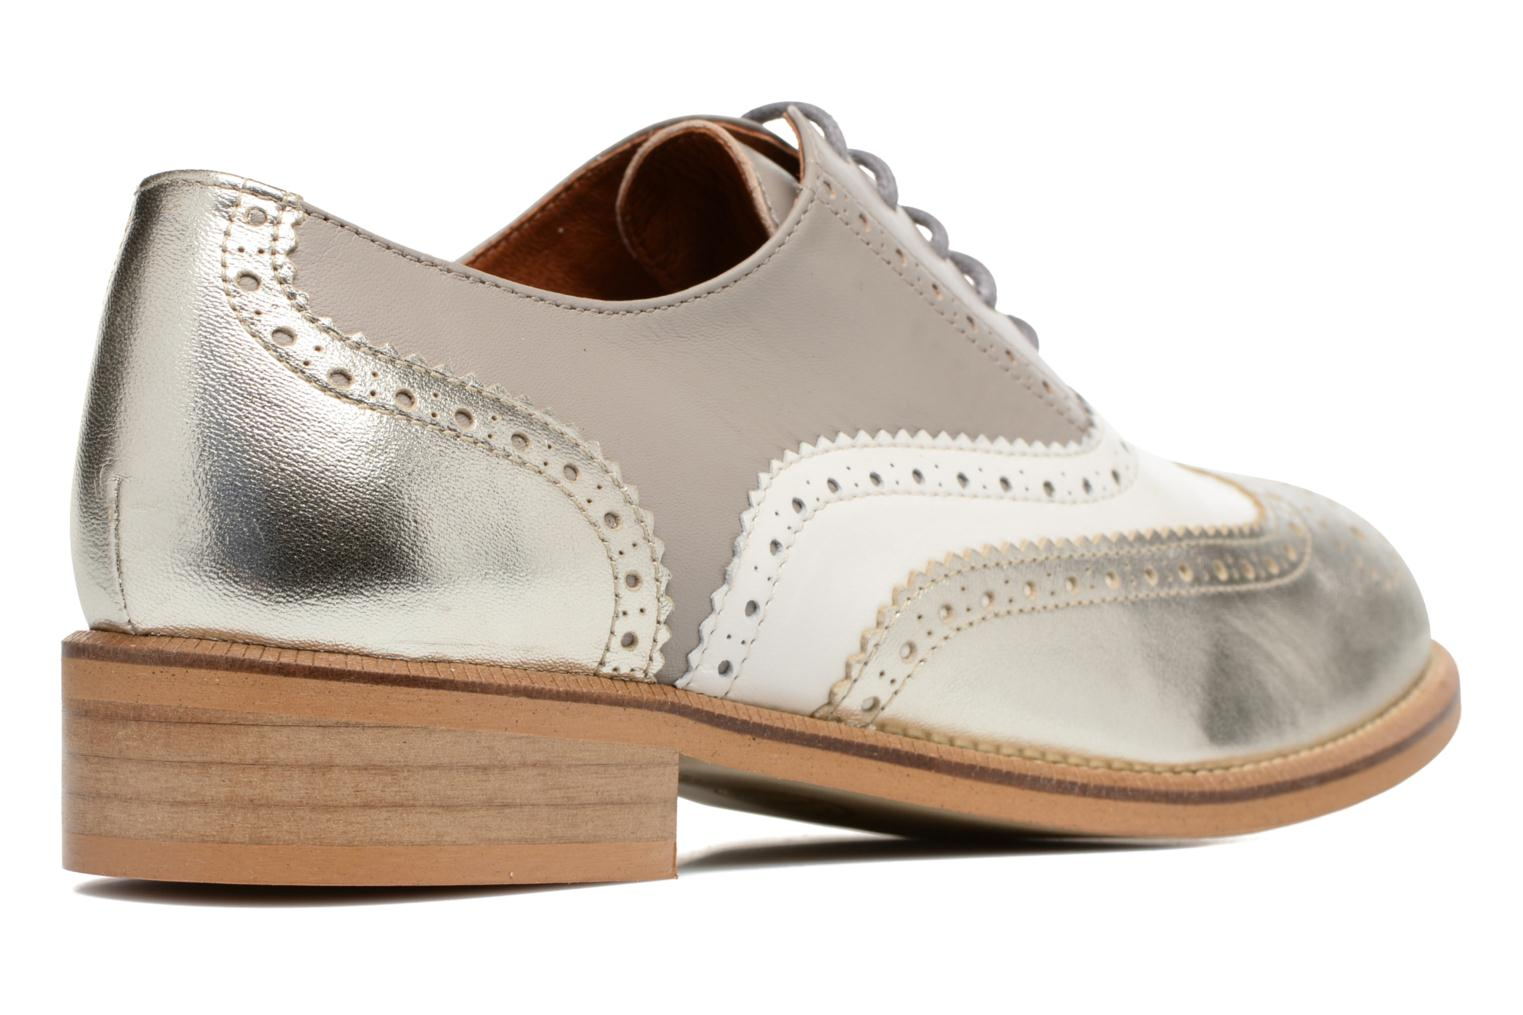 Sarenza Girls Made Gris Gang Galami Chaussures Blanc 90's ArgentMescai By Lacets5 À NwPvm8yn0O